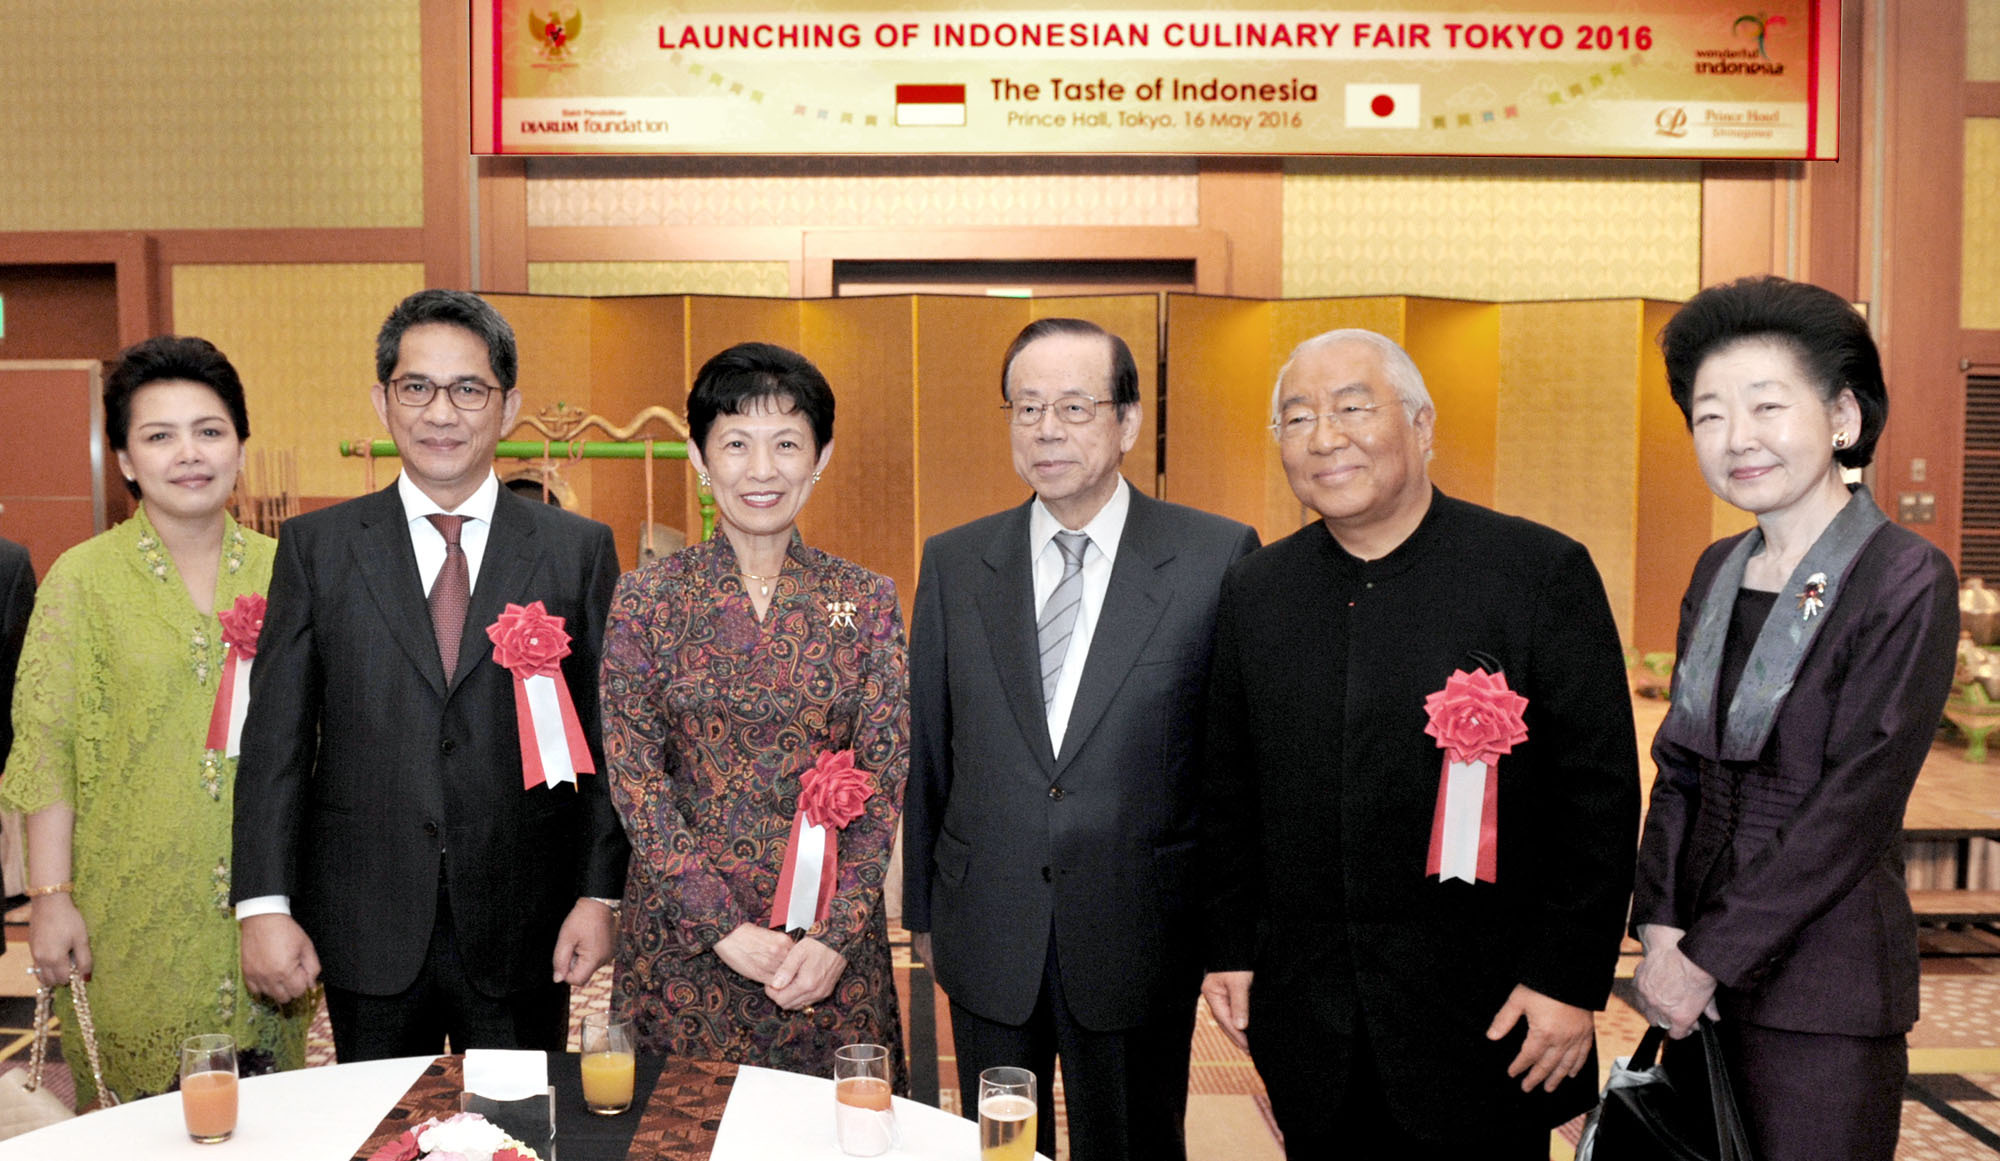 Indonesian Ambassador Yusron Ihza Mahendra (second from left) and his wife, Lusiana (left) pose with (from left) Princess Takamado, former Prime Minister Yasuo Fukuda, Yukio Hattori, president of Hattori Nutrition College; and Kiyoko Fukuda during the launch of the monthlong Indonesian Culinary Fair Tokyo 2016 — The Taste of Indonesia event, at Annex Tower, Shinagawa Prince Hotel on May 16. | YOSHIAKI MIURA